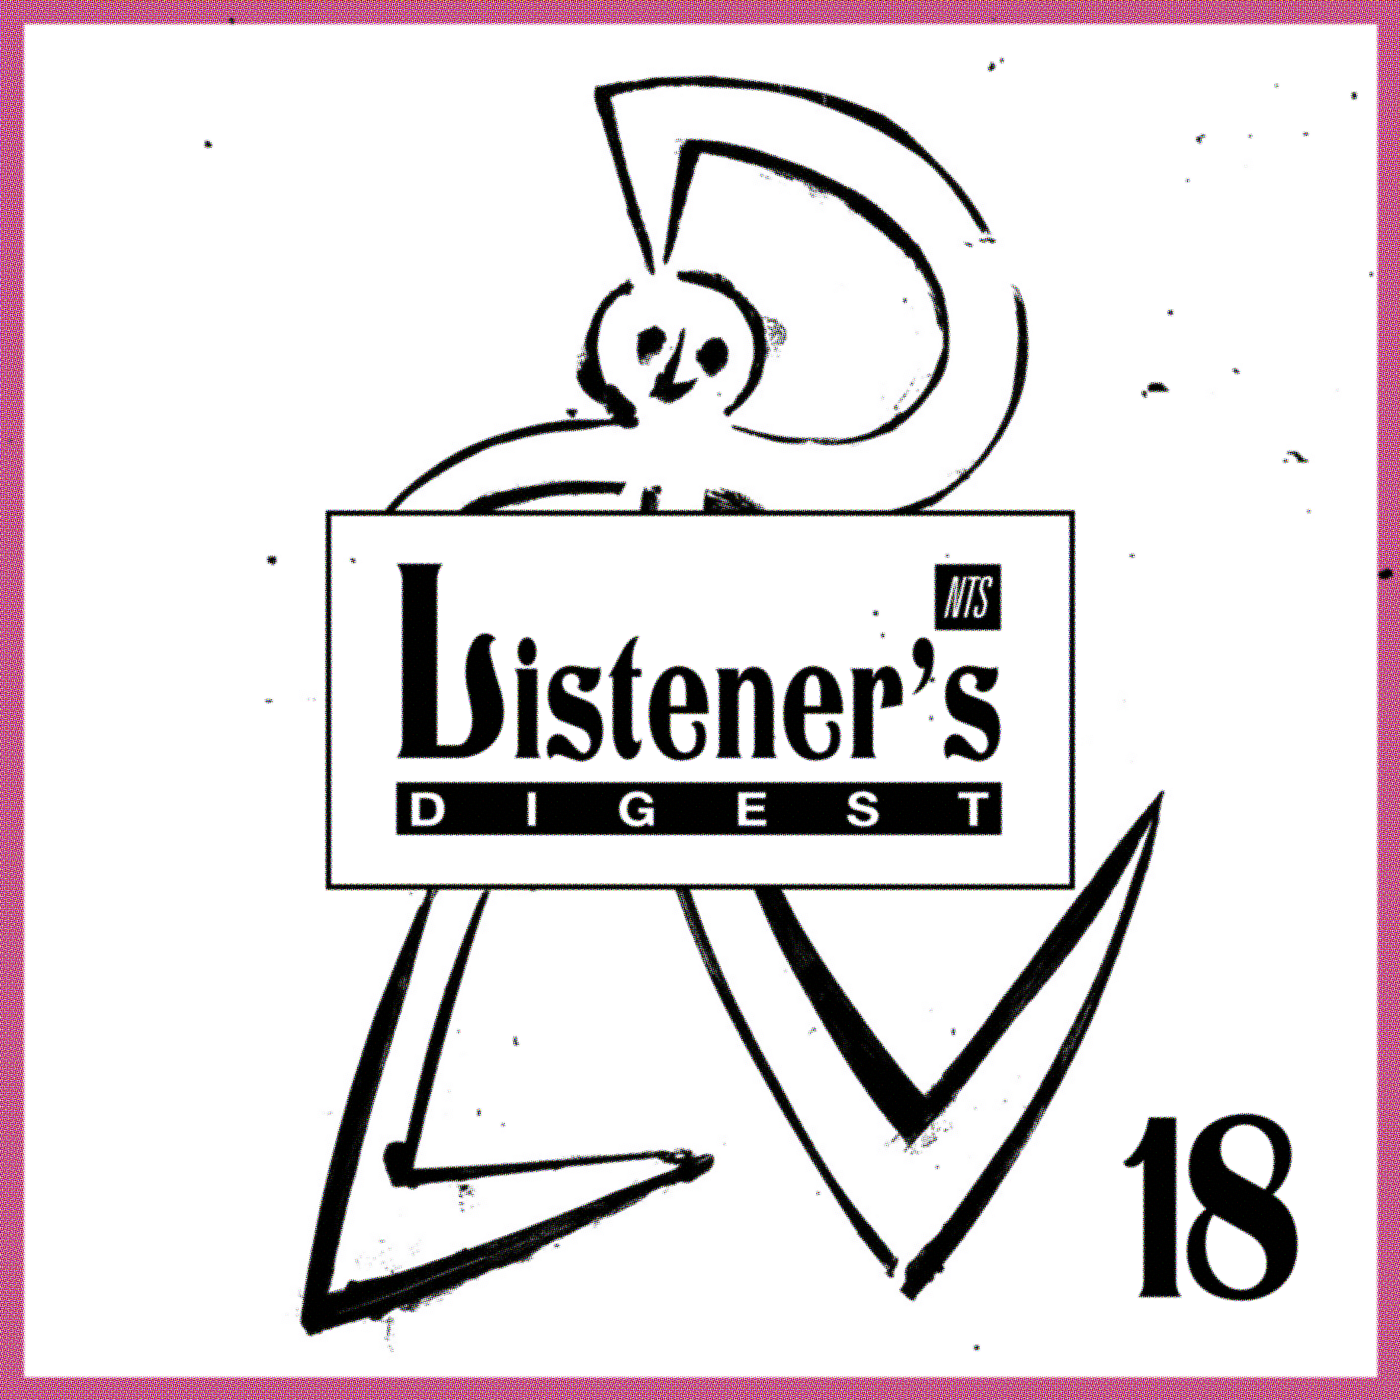 Listeners-Digest-18-NTS.png